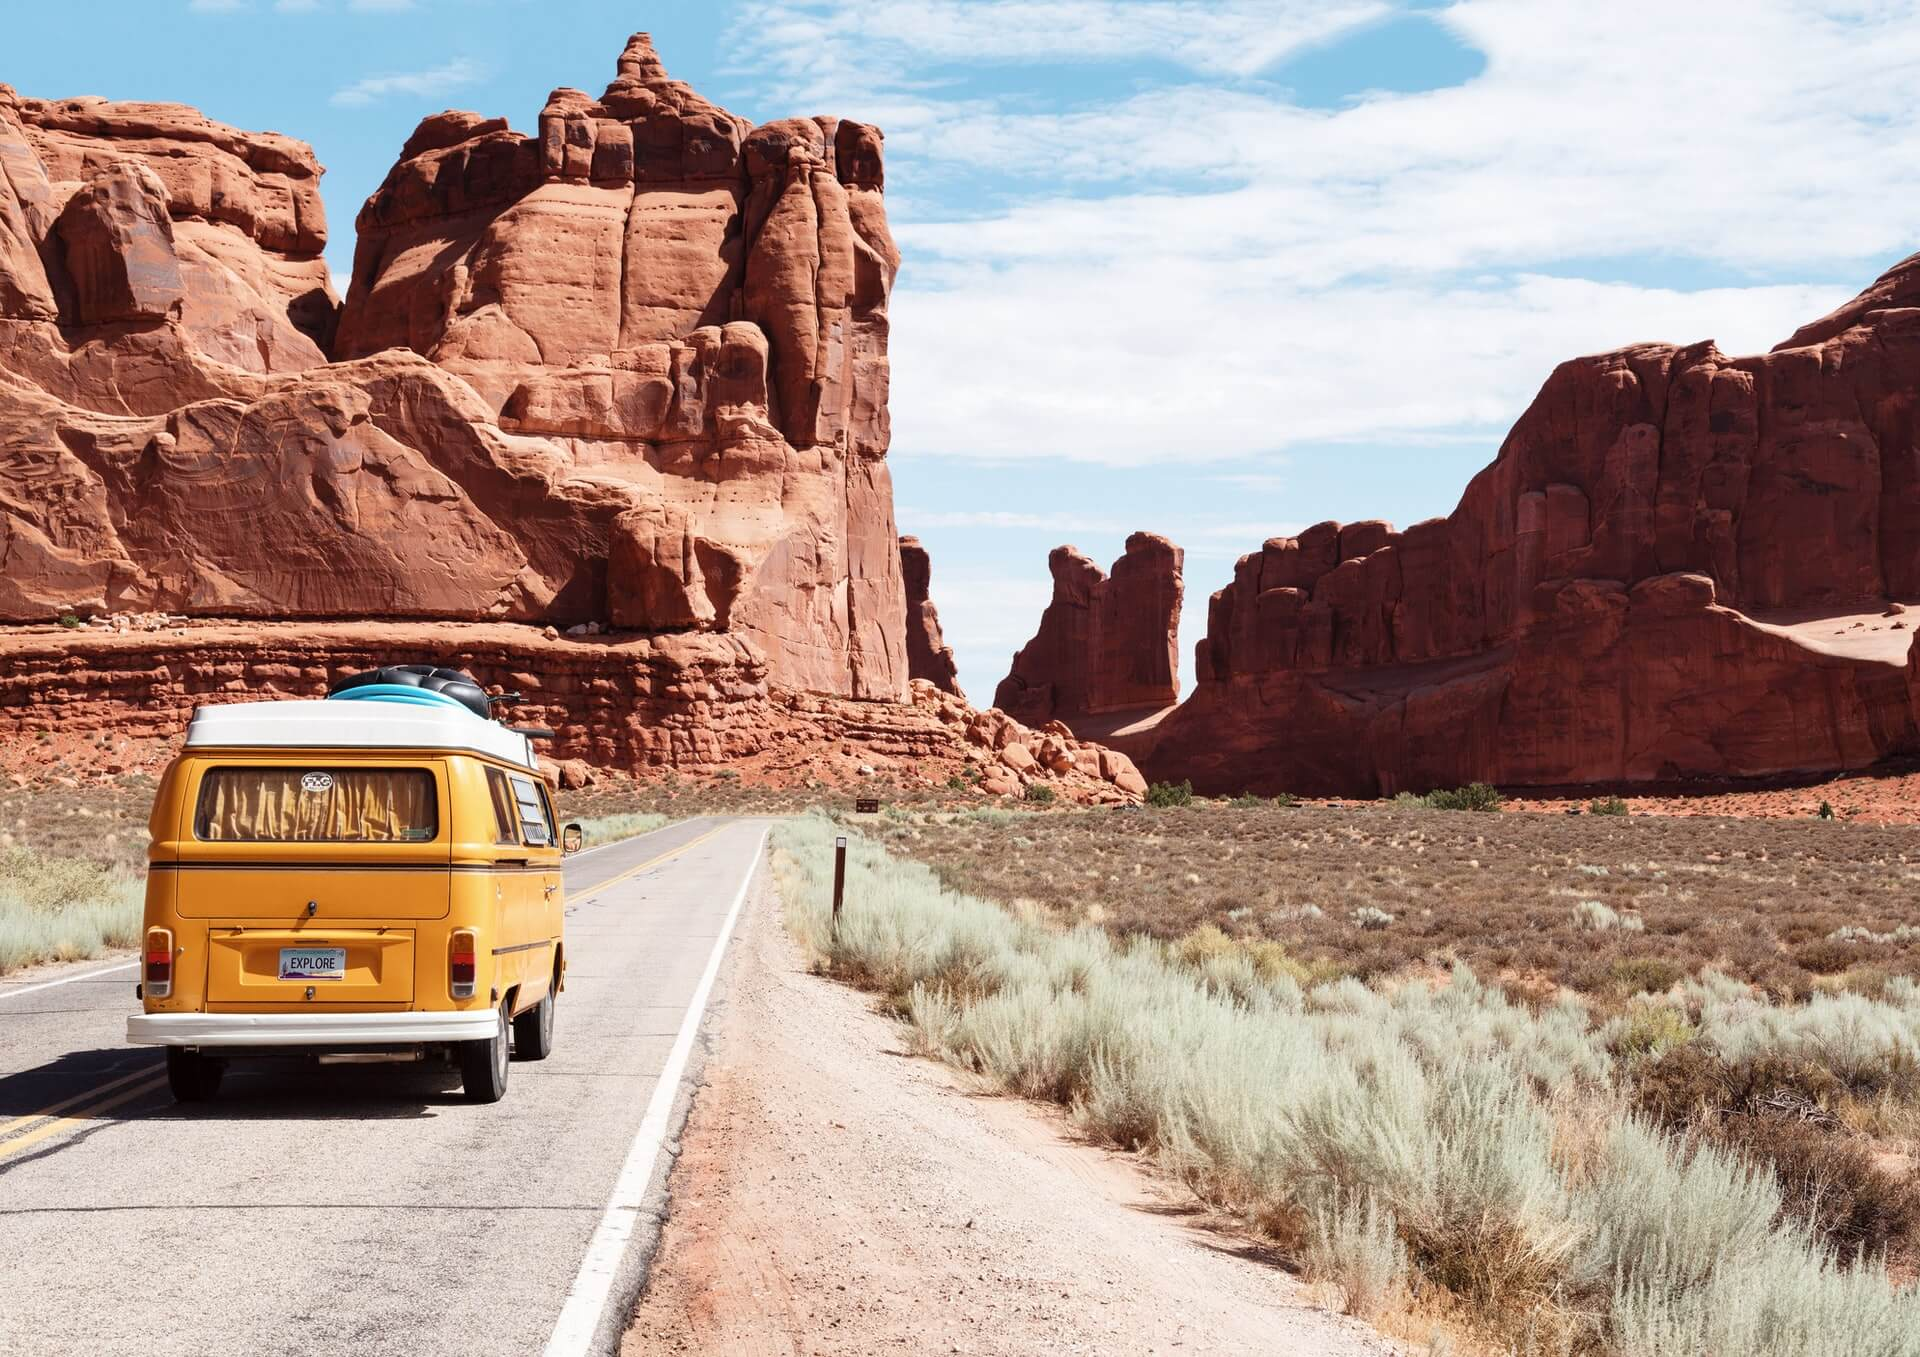 a vintage bus driving through the red rocks of Arches National Park